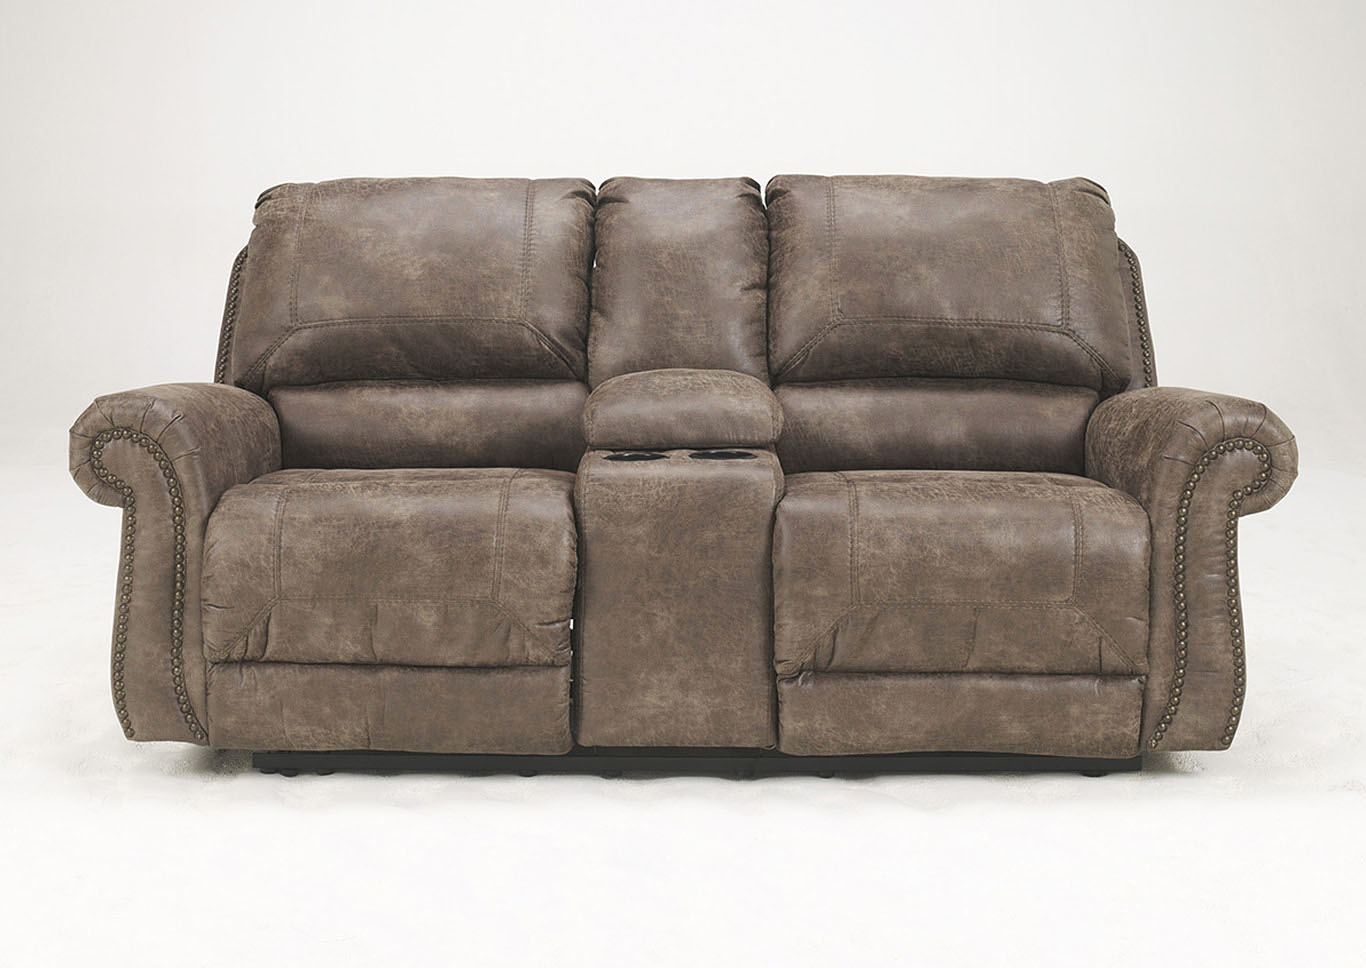 Oberson Gunsmoke Double Reclining Loveseat w/Console,Signature Design By Ashley